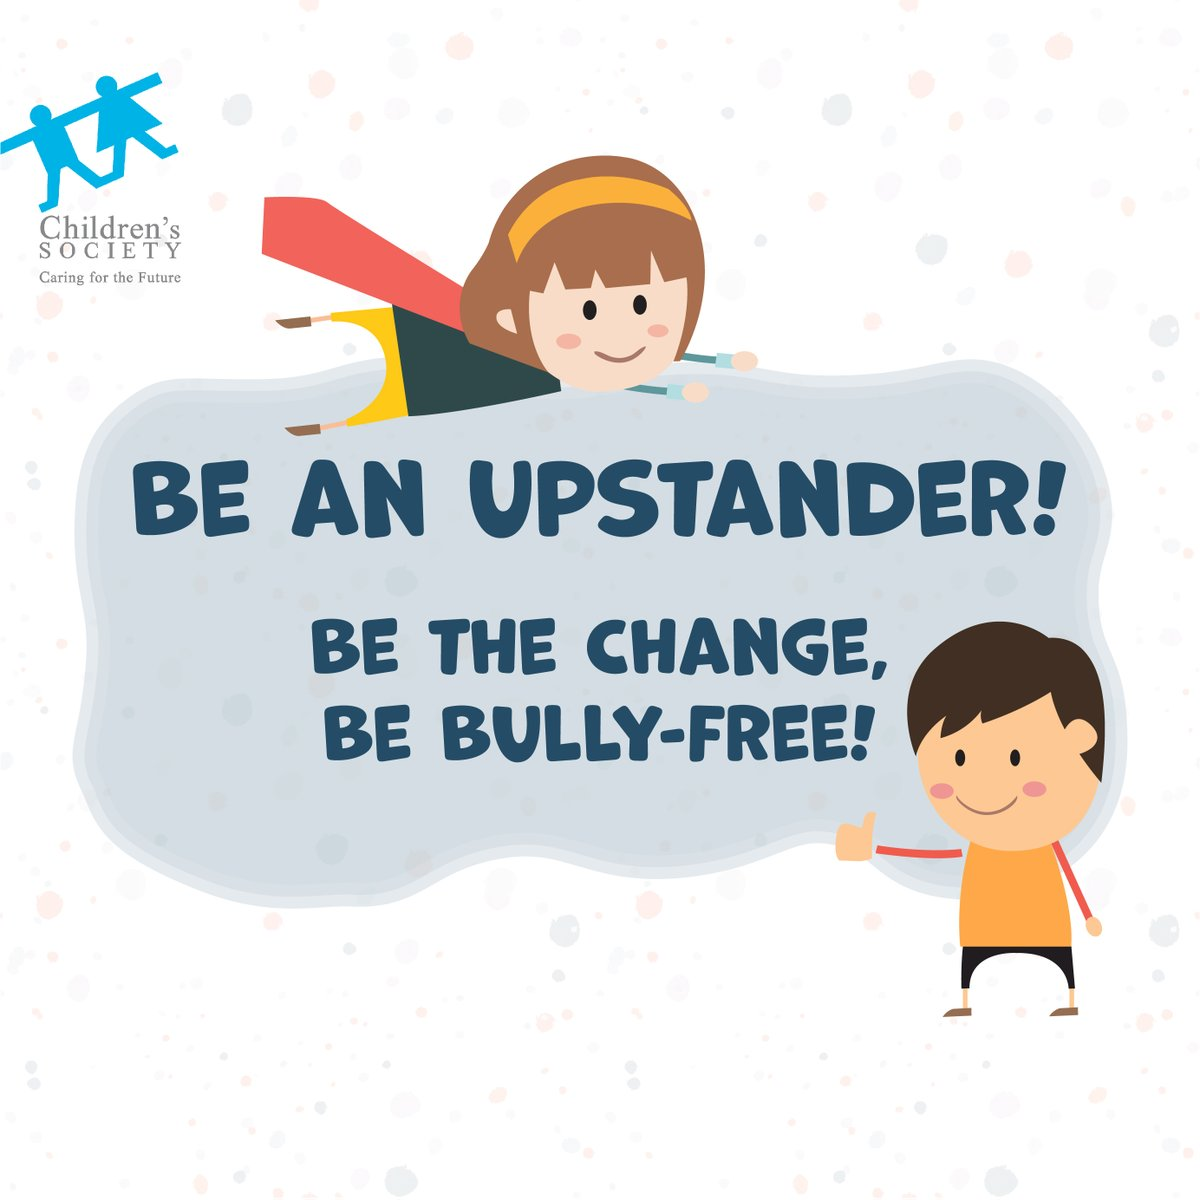 Regardless of the type of bullying, bullying causes pain and hurt. If you know of someone who is being bullied, please stand up, speak up and act immediately to provide support. #BeAnUpstander